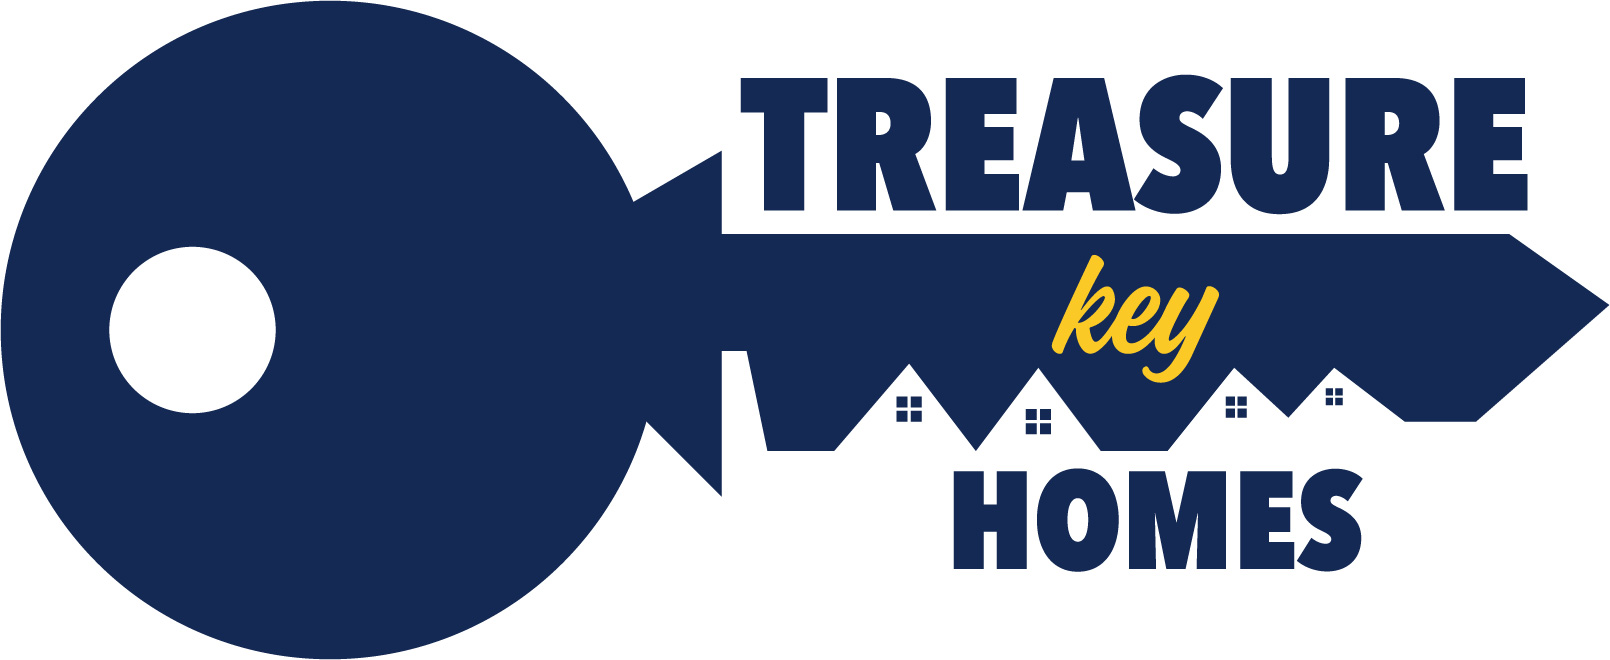 Treasure Key Homes